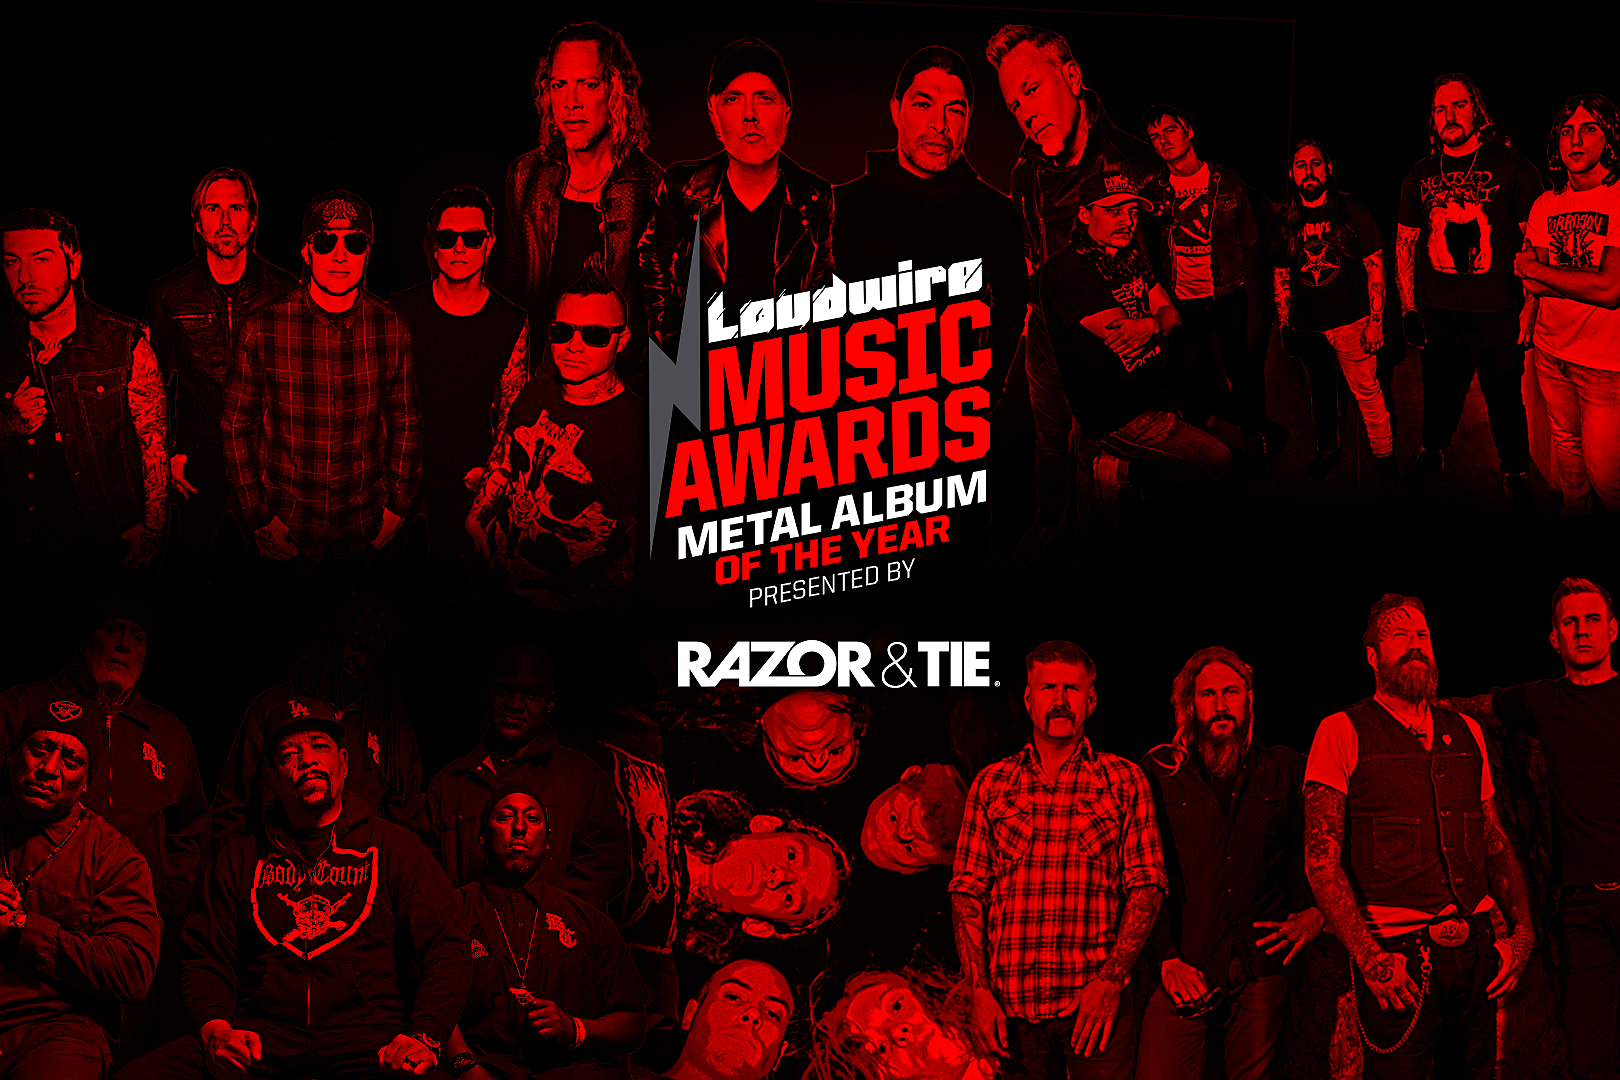 Vote for the Metal Album of the Year – 2017 Loudwire Music Awards